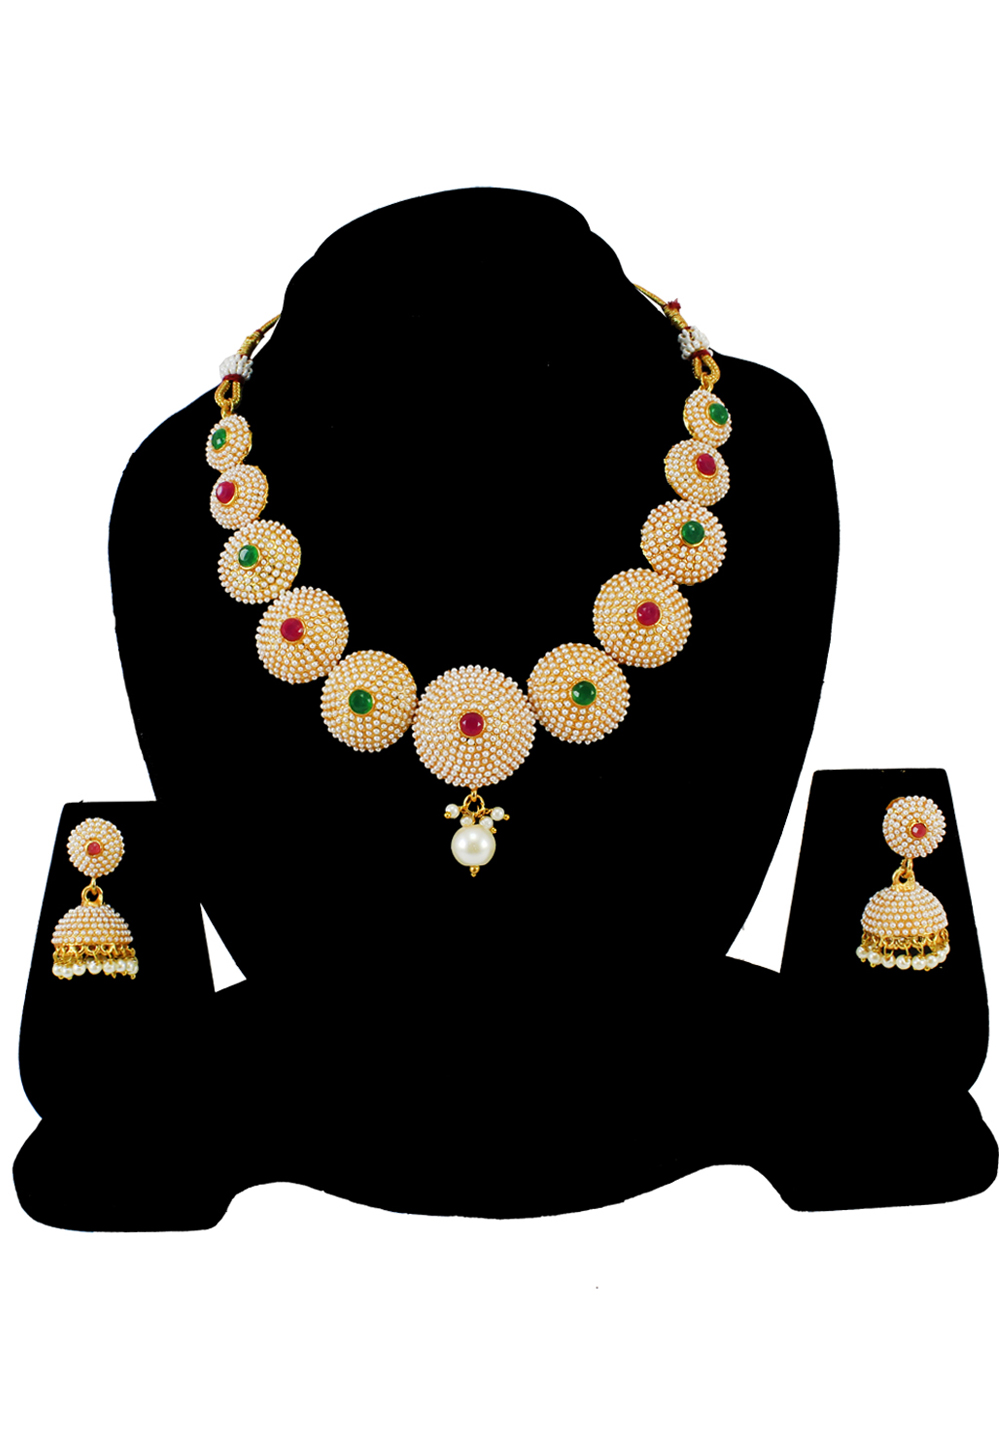 Green Alloy Pearl Beads Necklace Set Earrings 177821